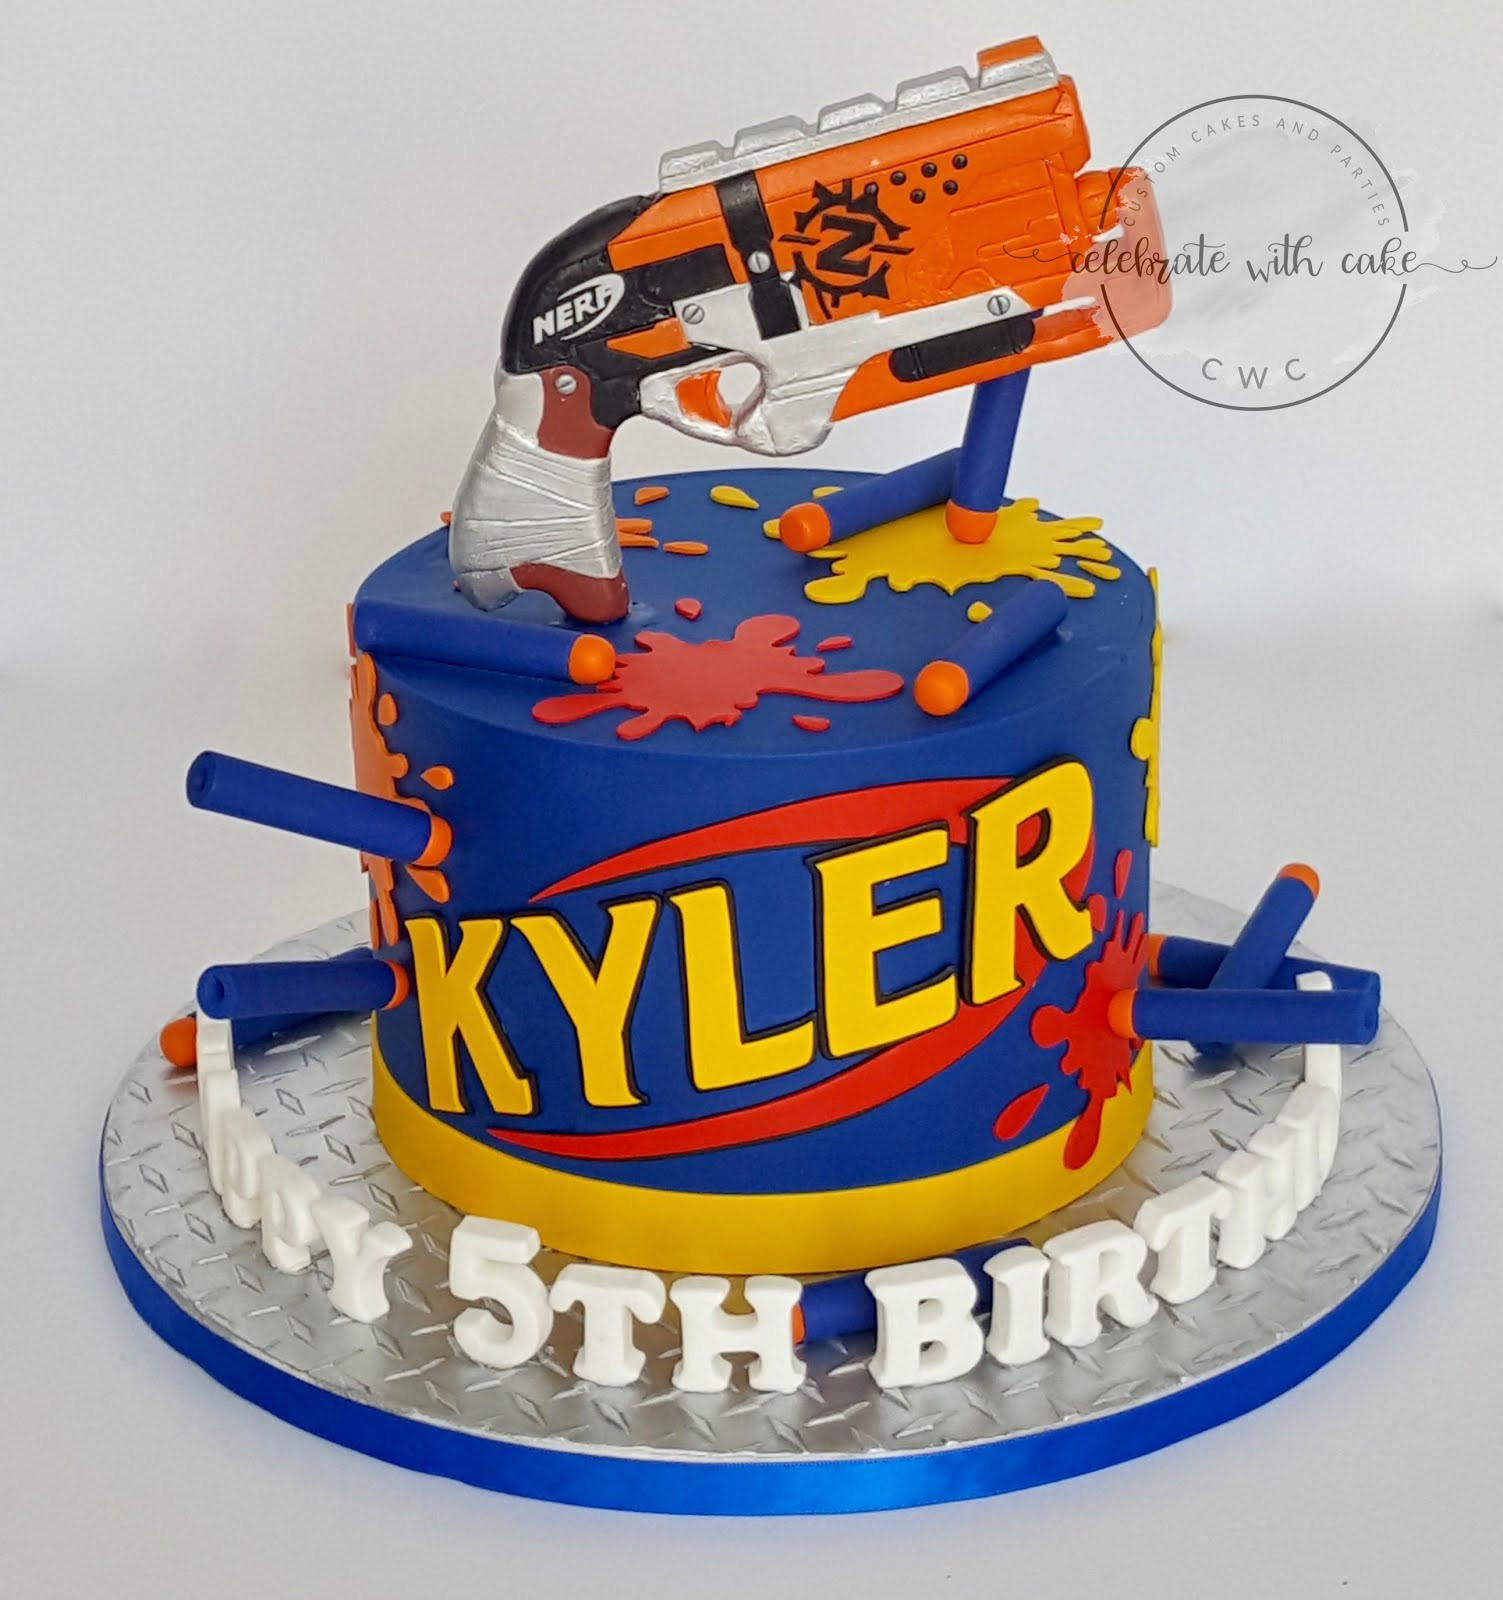 Best ideas about Nerf Gun Birthday Cake . Save or Pin Celebrate with Cake Now.